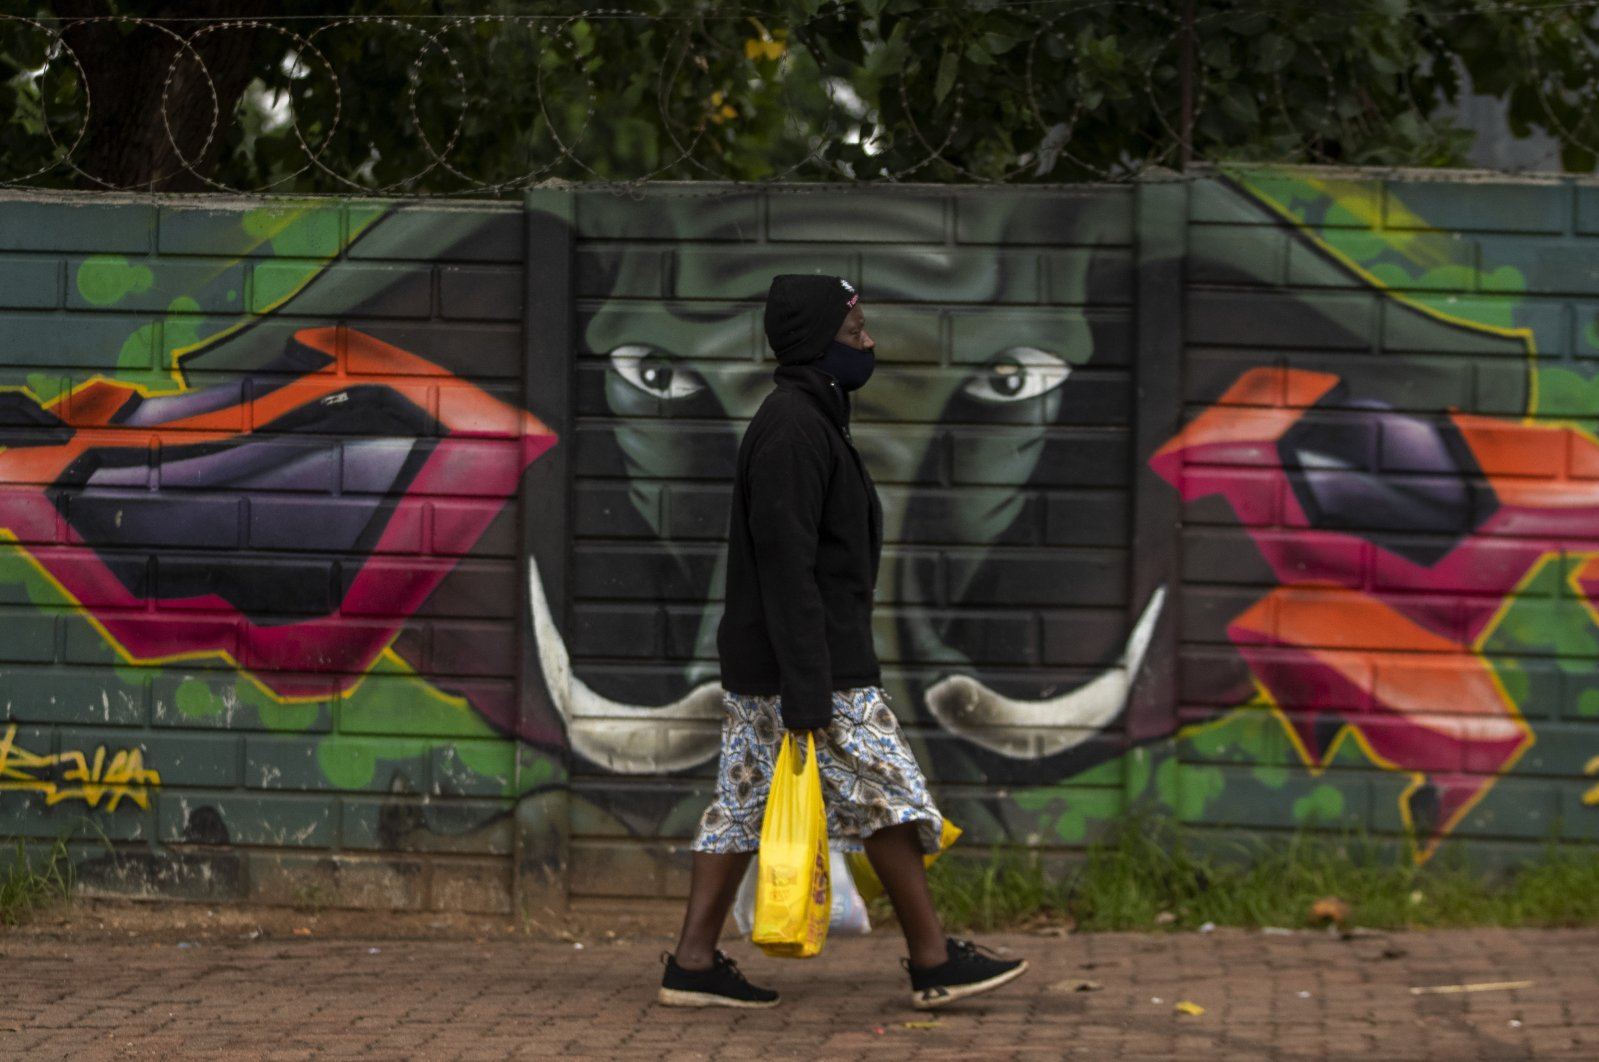 A woman wearing a face mask as a precaution against the coronavirus outbreak walks on the street in downtown Johannesburg, South Africa, Jan. 26, 2021. (AP Photo)